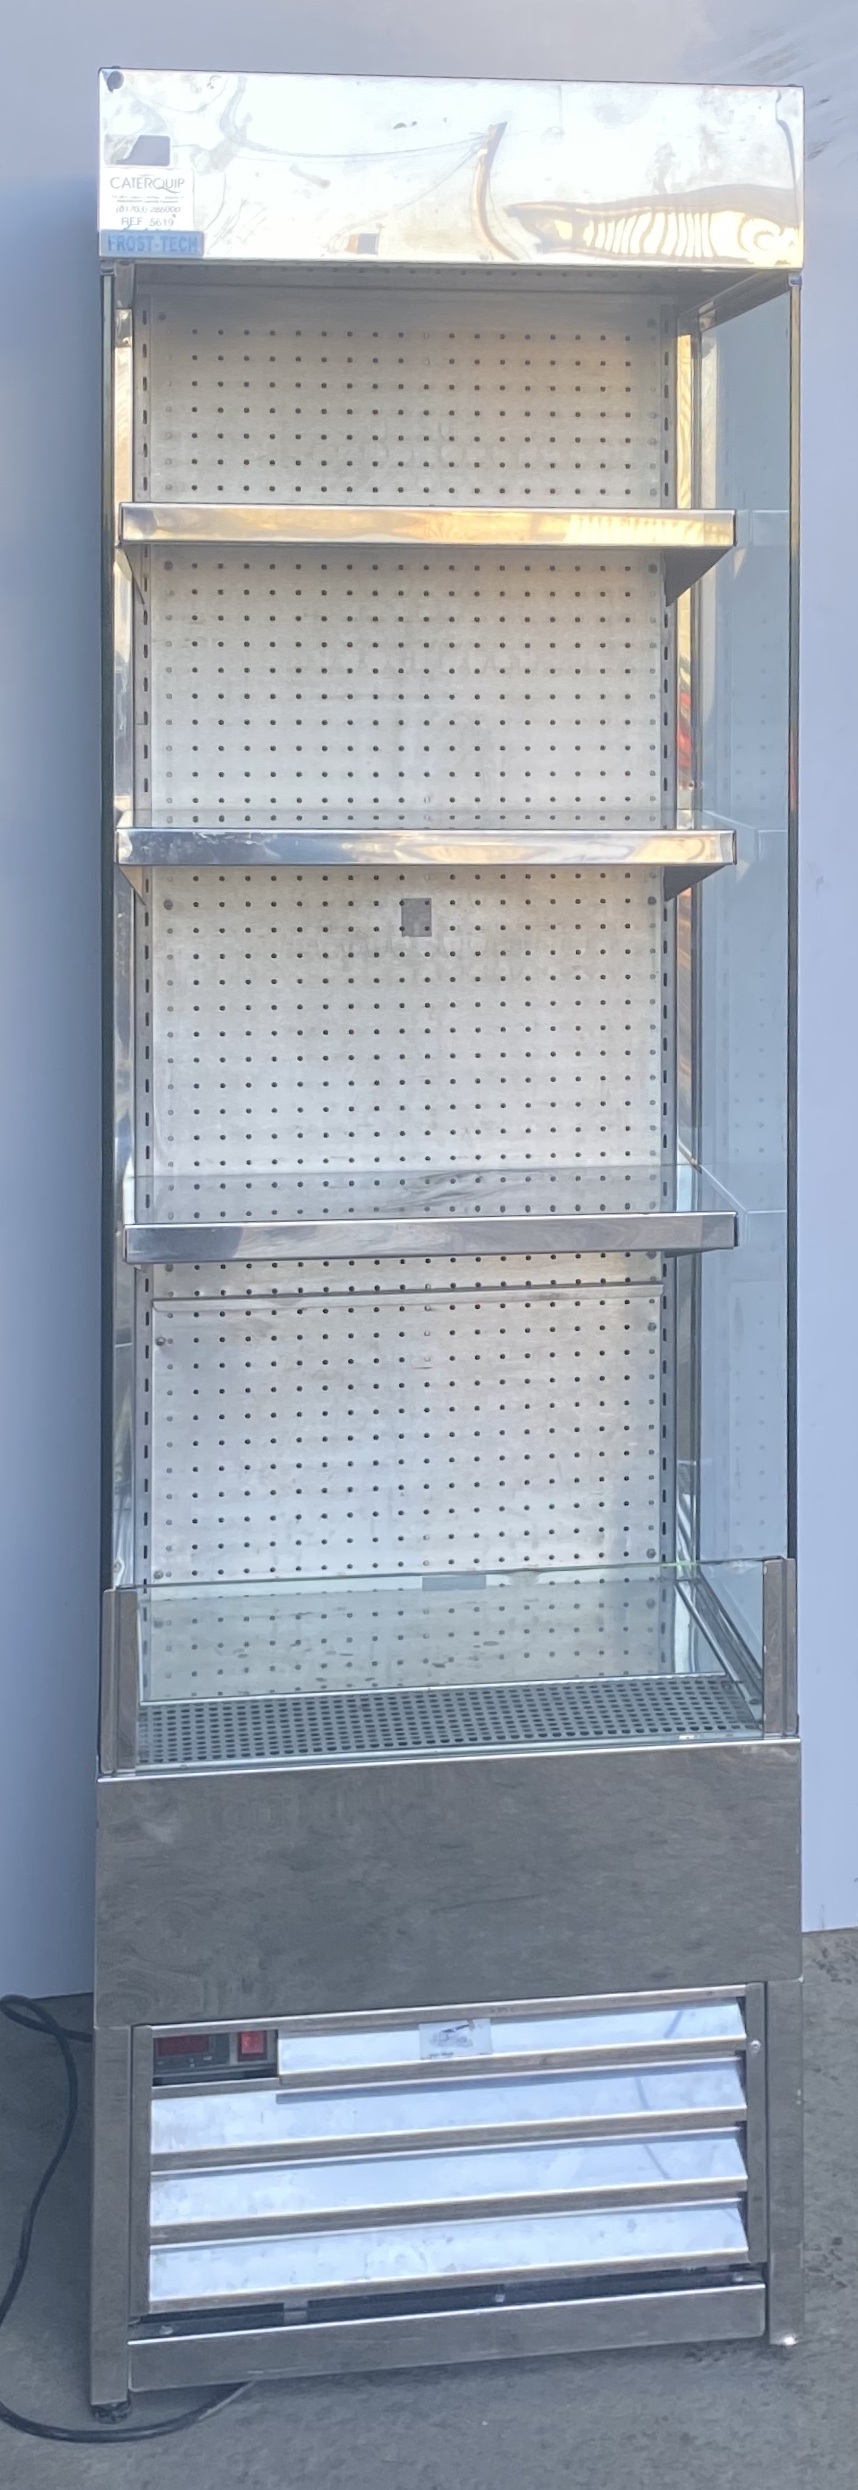 FROSTECH Chilled Multideck Reach-In Display